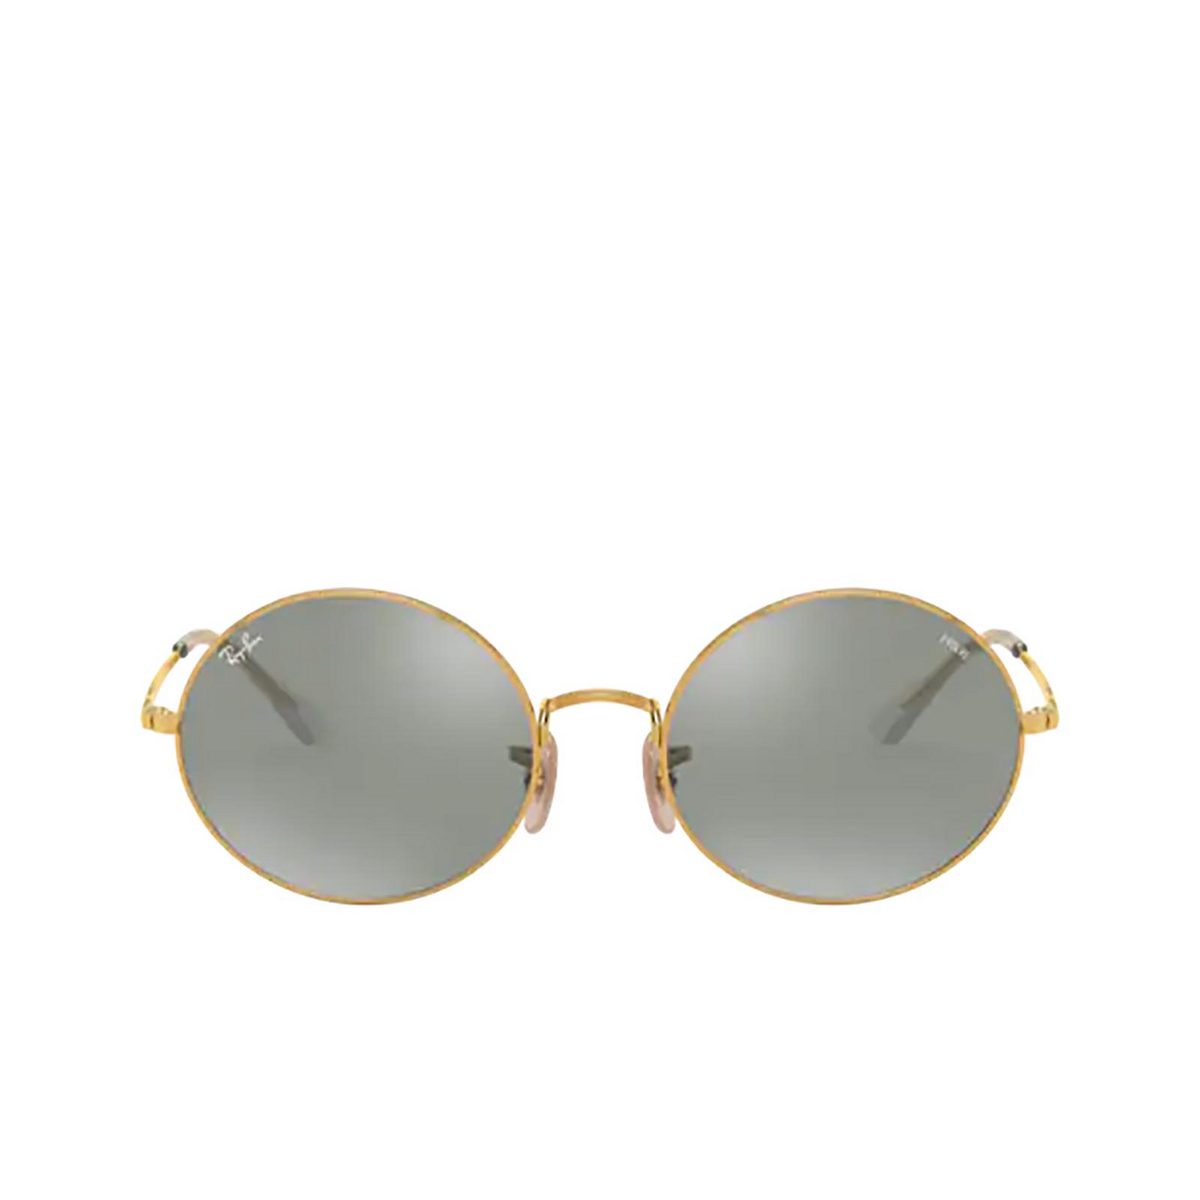 Ray-Ban® Oval Sunglasses: Oval RB1970 color Arista 001/W3 - front view.